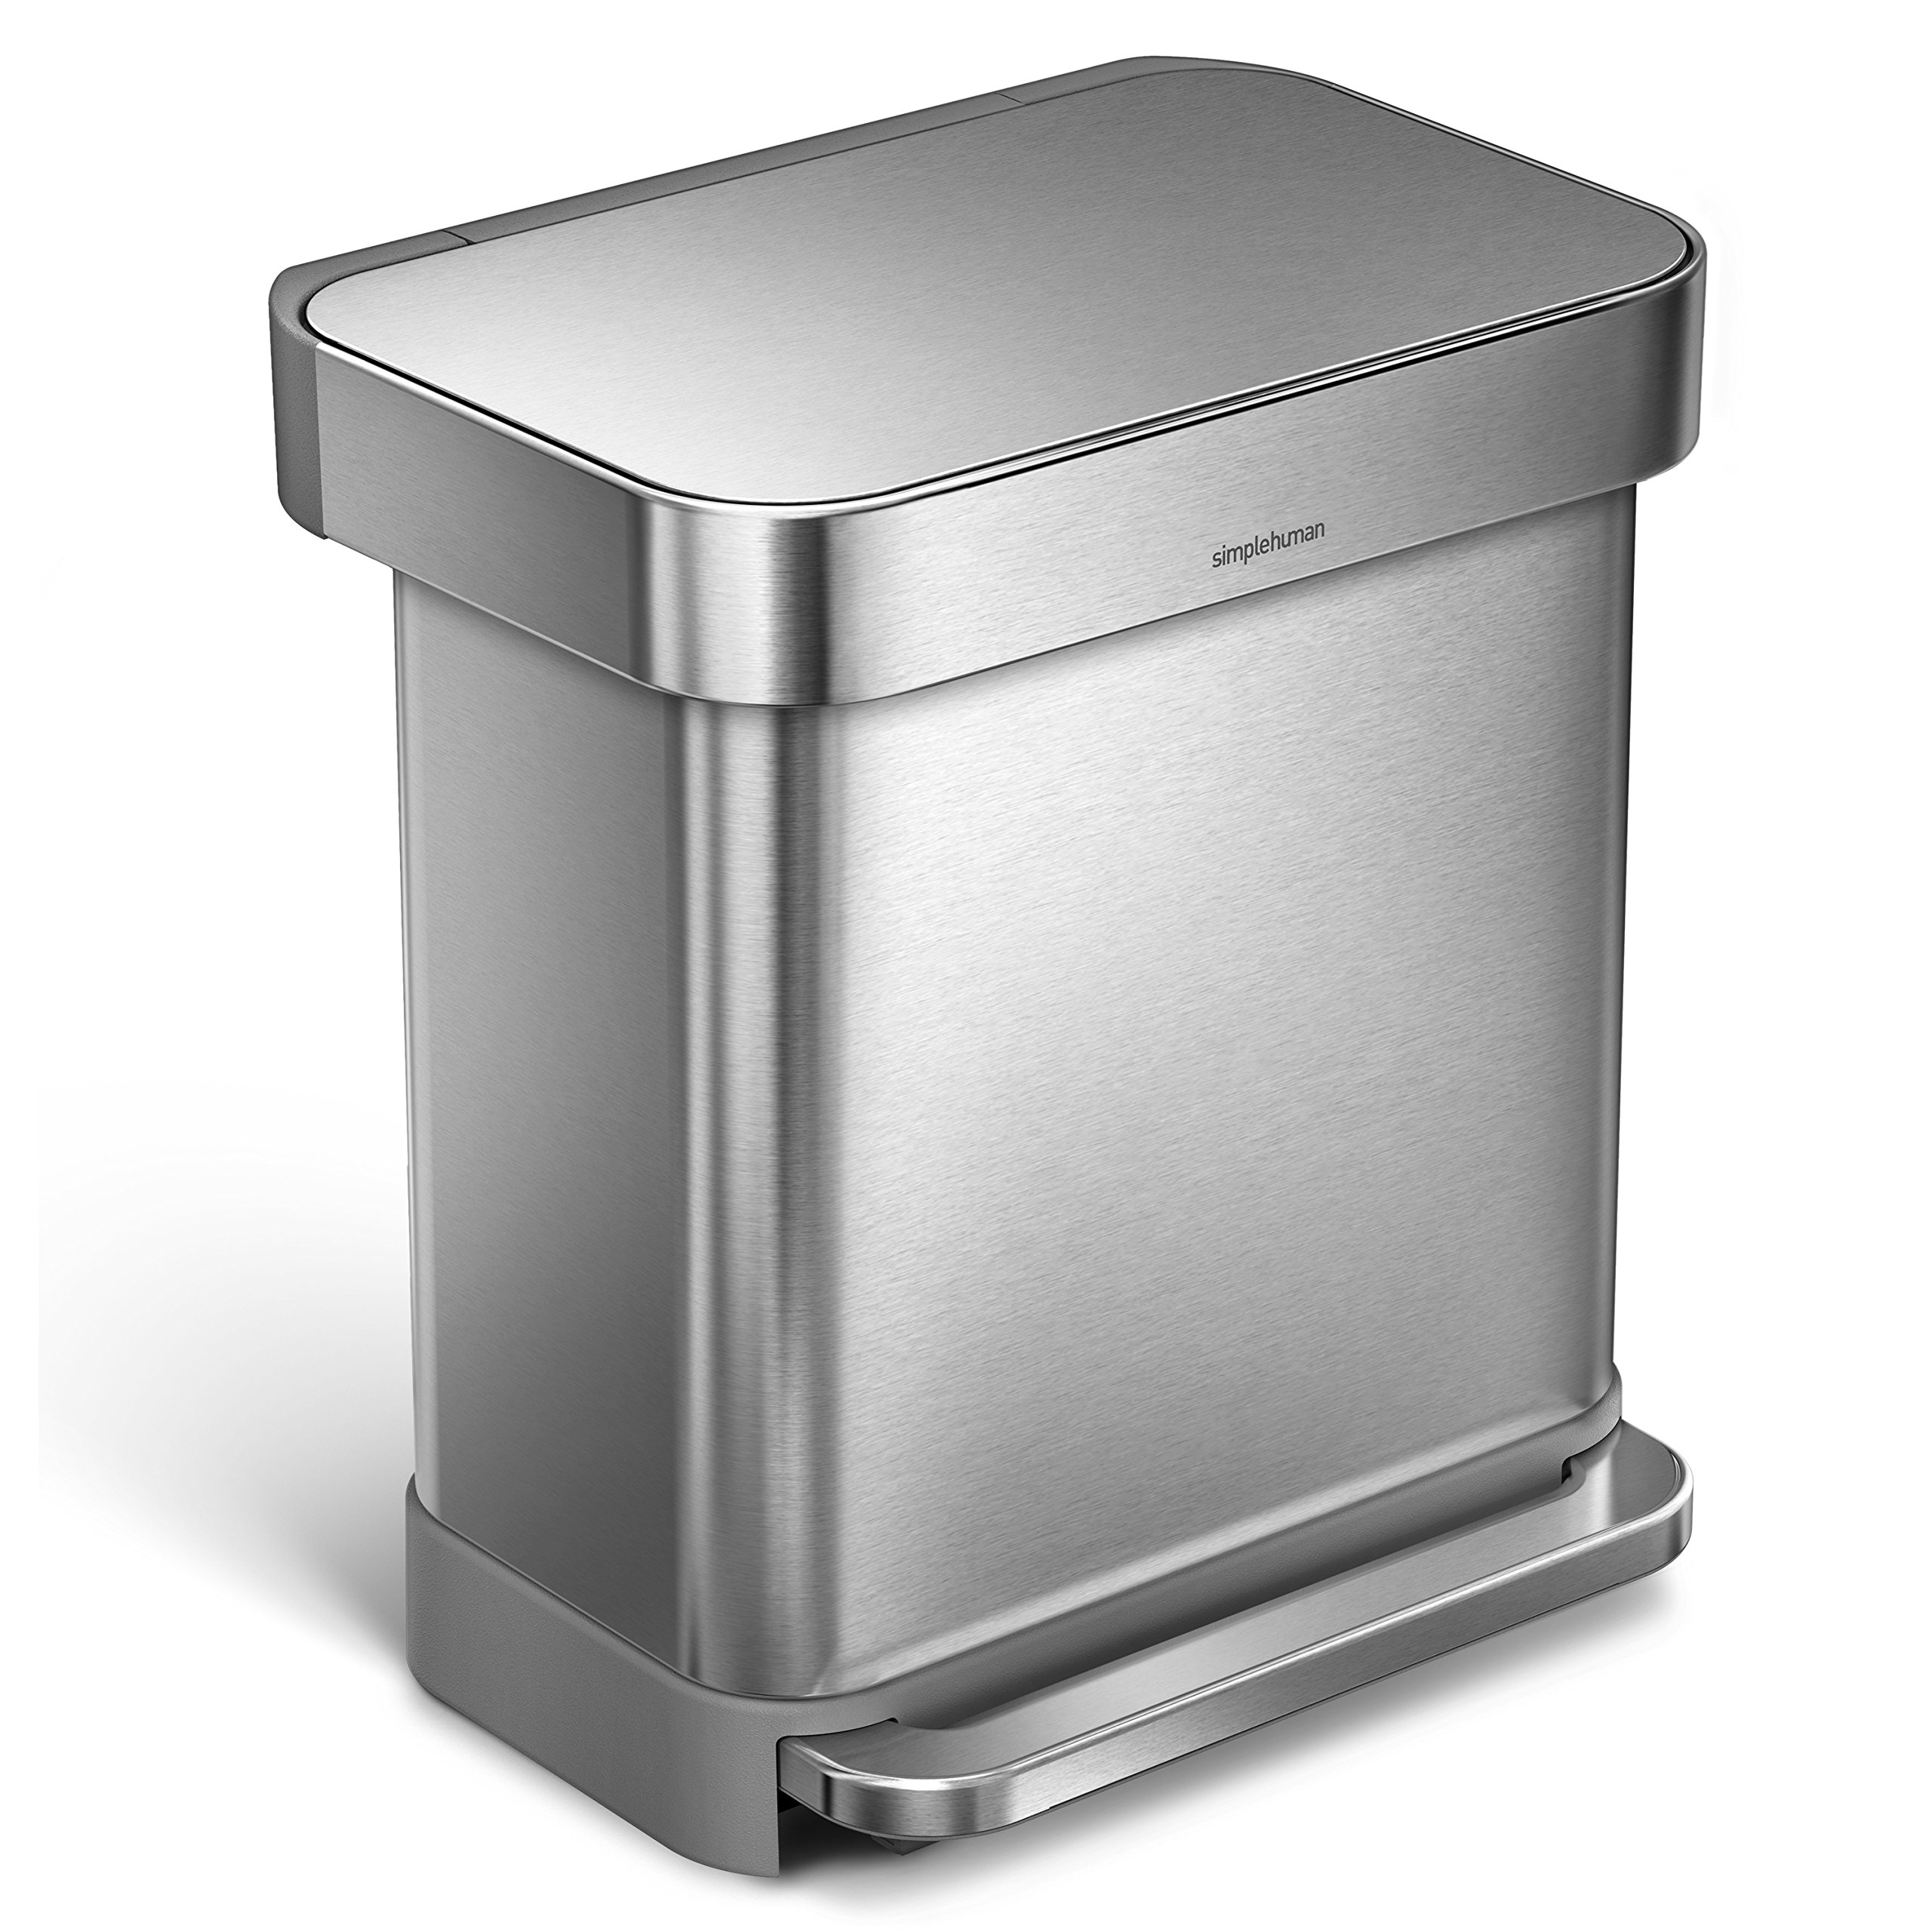 simplehuman 30 Liter/8 Gallon Stainless Steel Rectangular Kitchen Step Trash Can with Liner Pocket, Brushed Stainless Steel by simplehuman